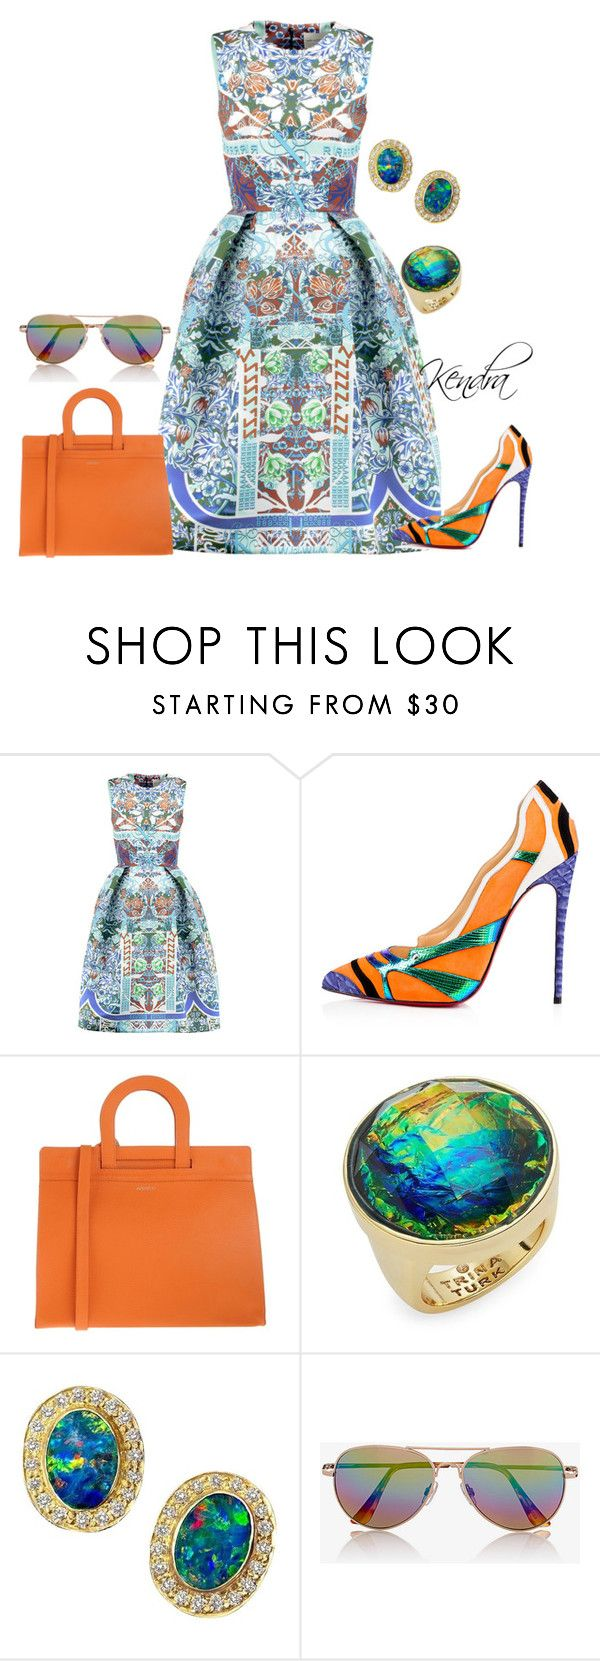 """""""Never Looking Back"""" by kmariestyles ❤ liked on Polyvore featuring Mary Katrantzou, Christian Louboutin, Avenue 67, Trina Turk and Express"""